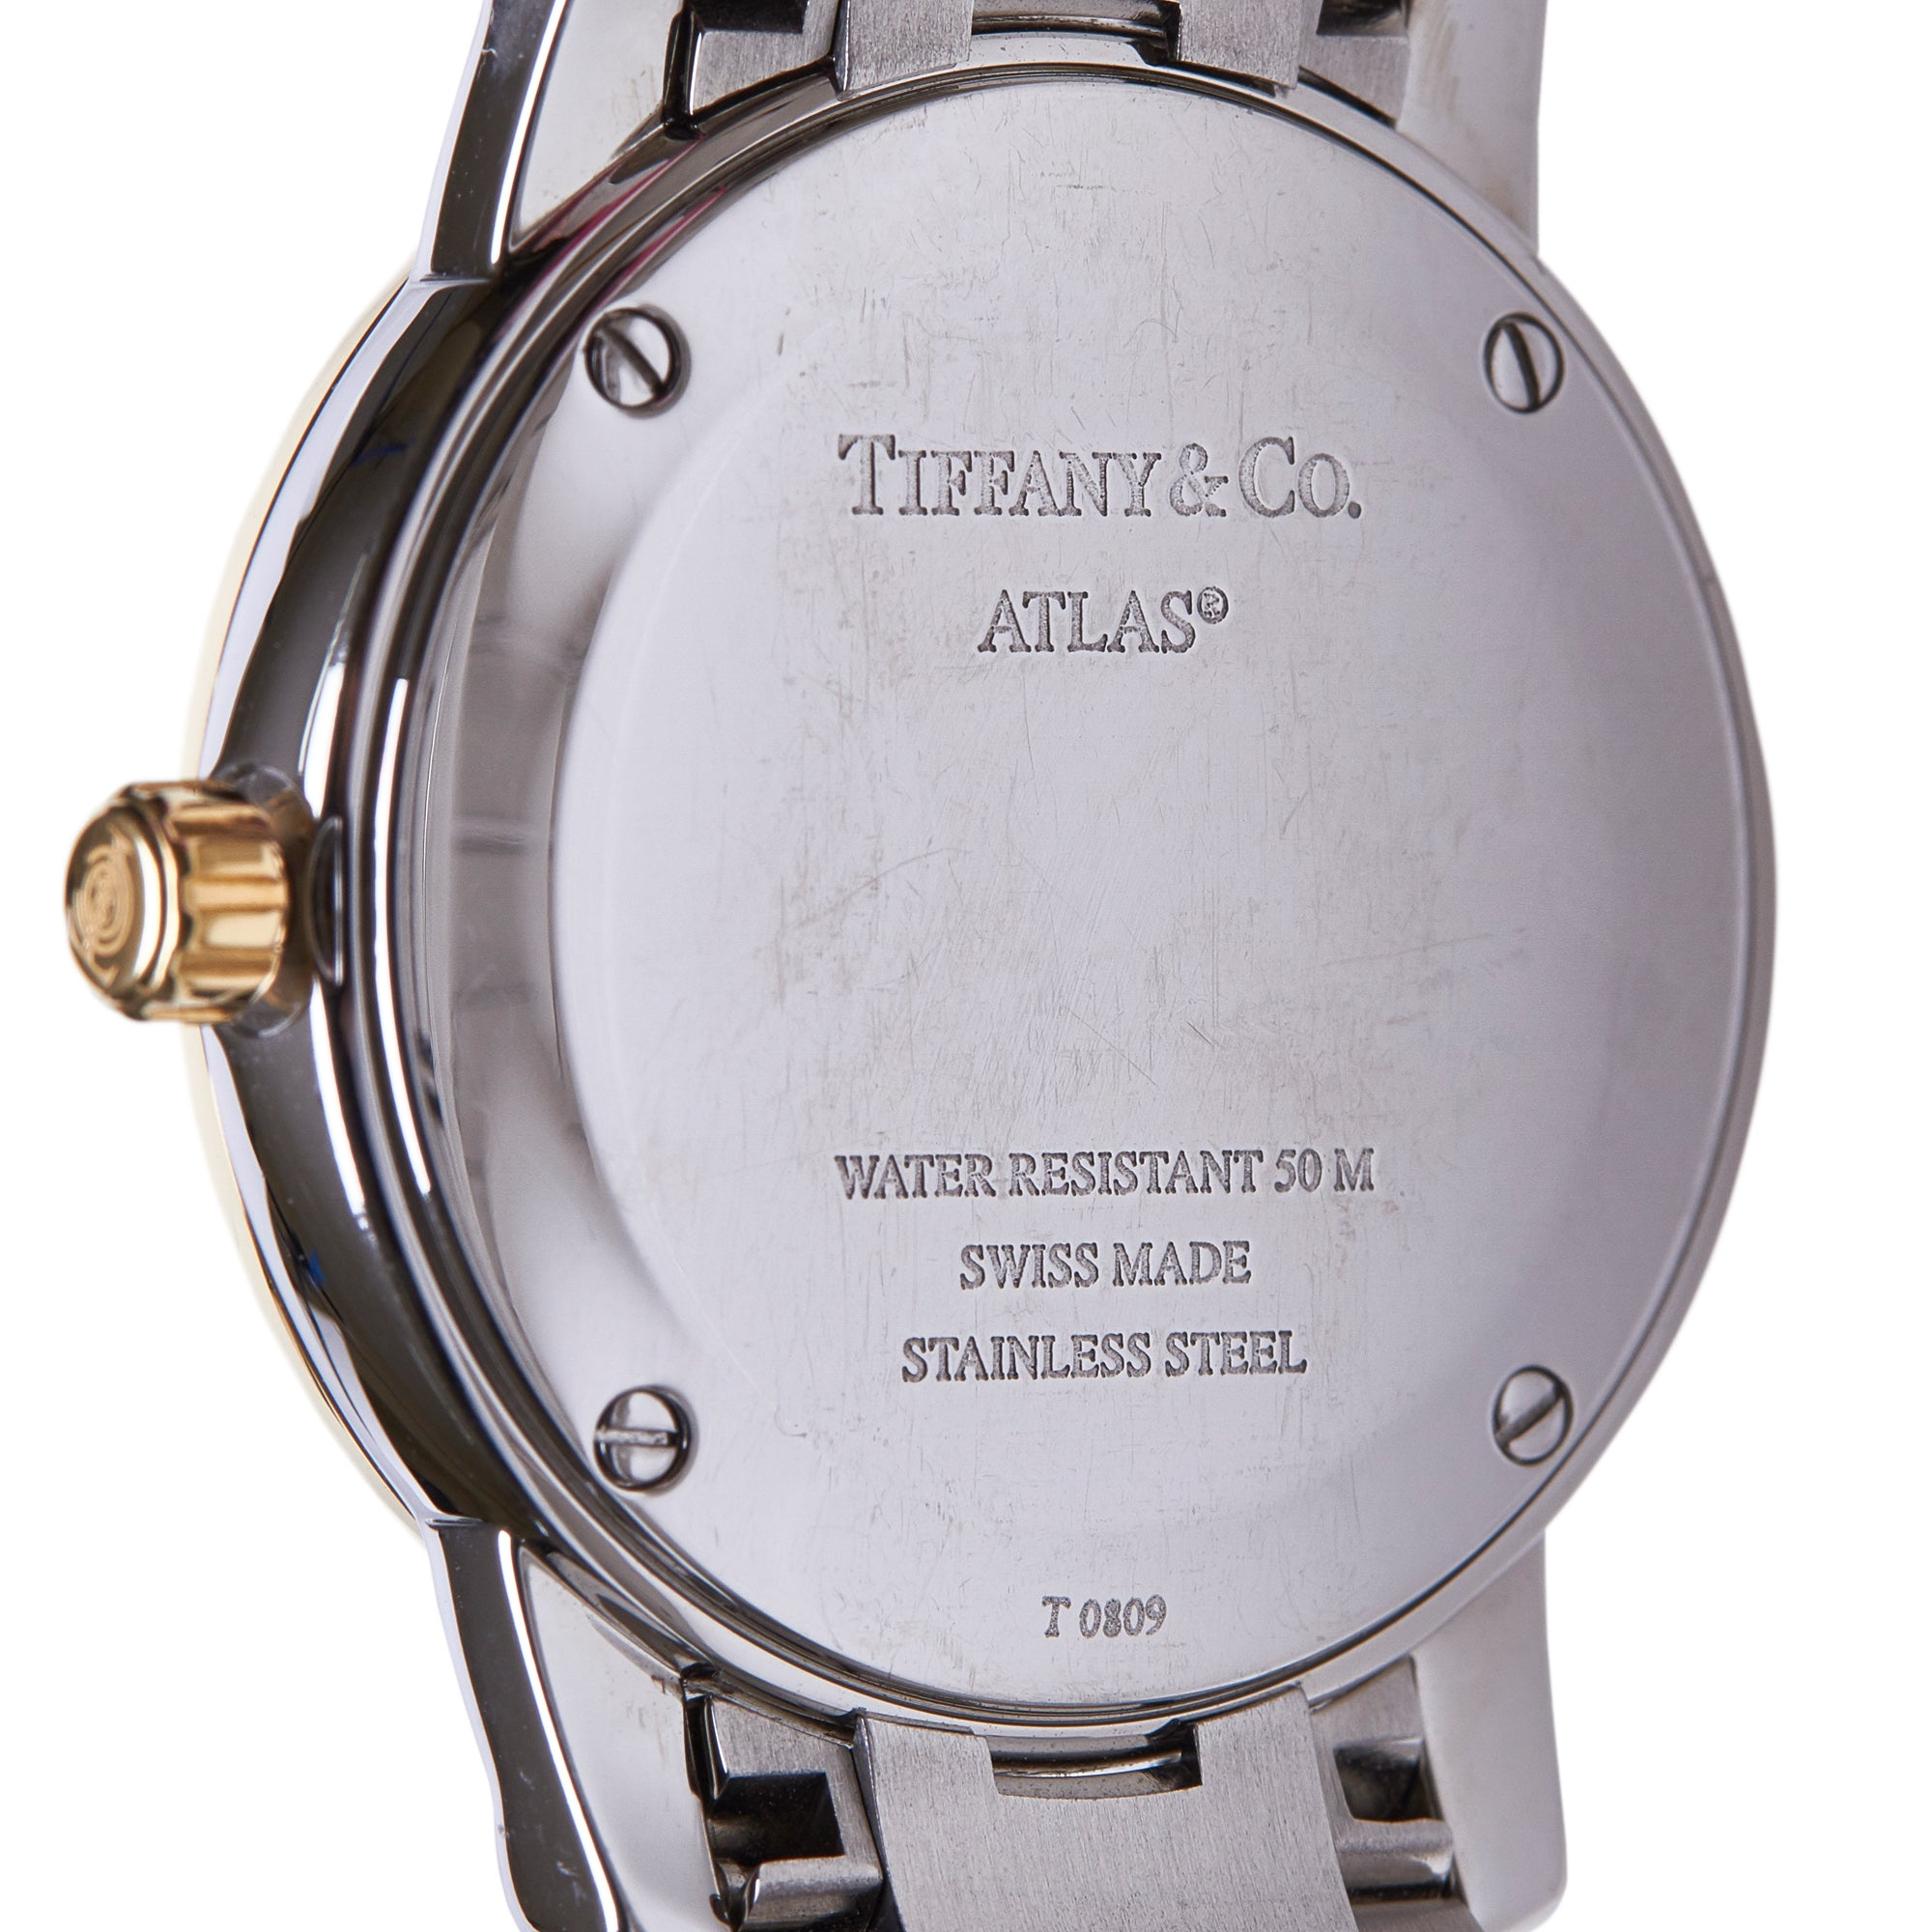 Tiffany and CO. watch